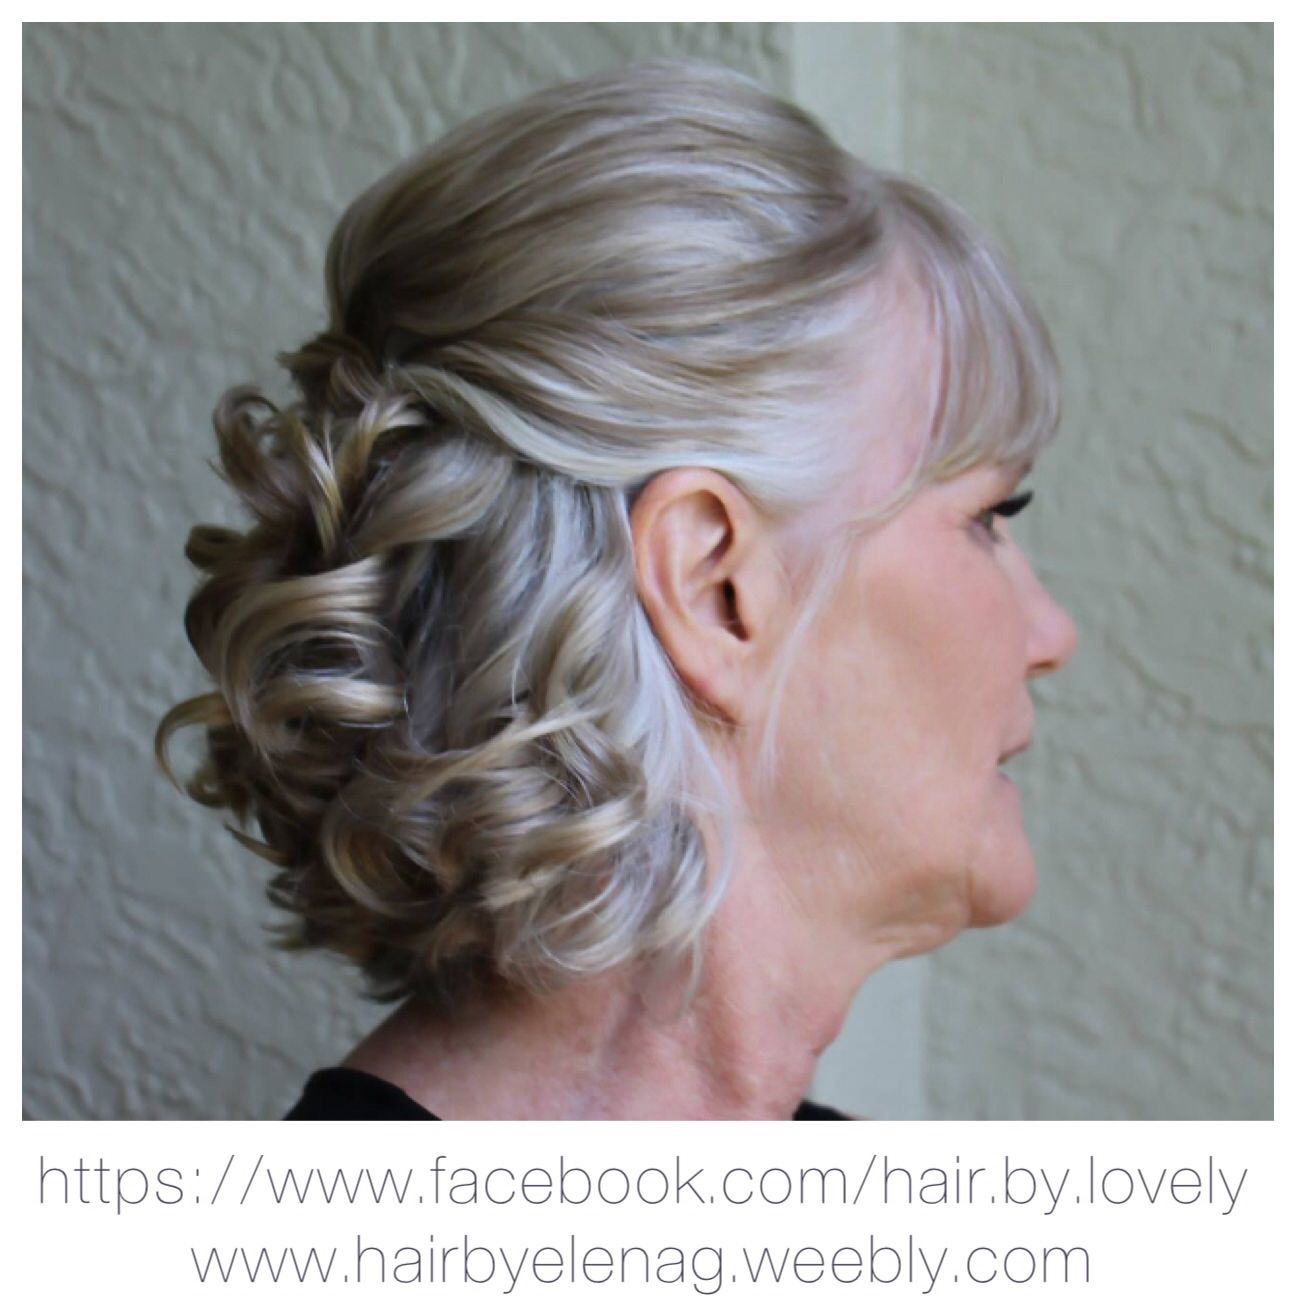 Bridal hair wedding hair mother of the groom mother of the bride